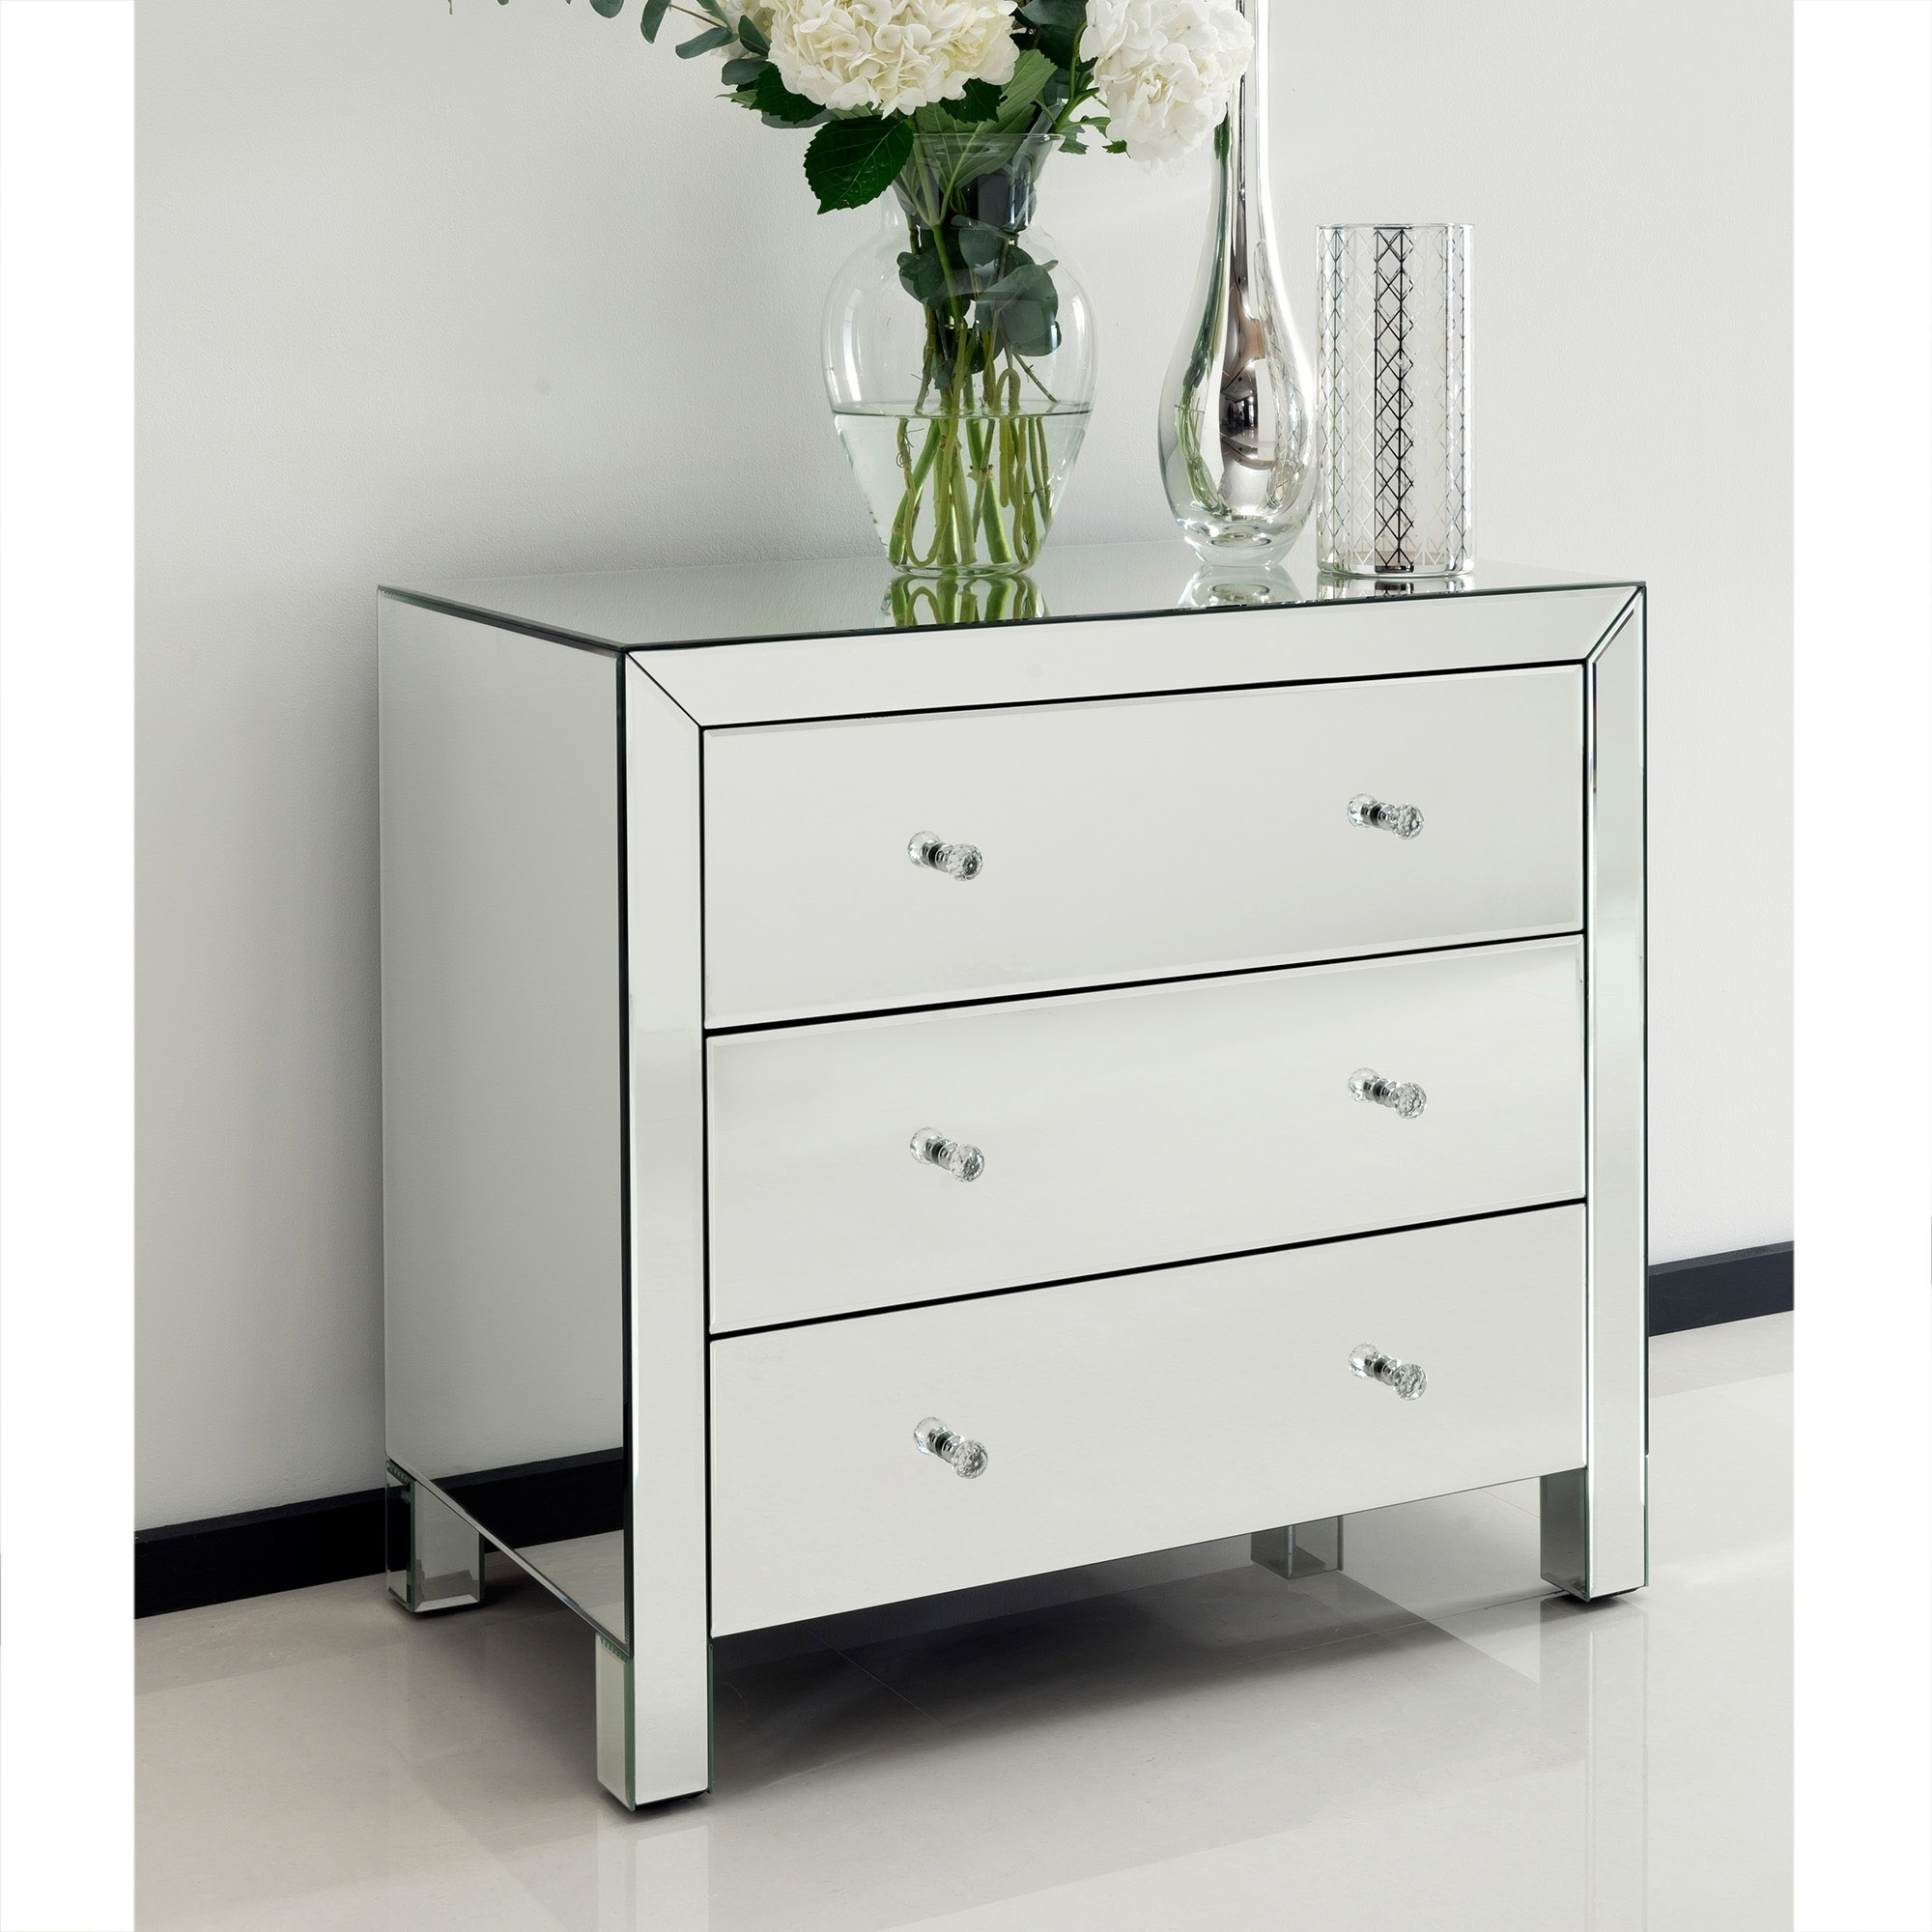 Romano Crystal Mirrored Chest 3 Drawer Venetian Mirrored Furniture With Venetian Mirrored Chest Of Drawers (Image 7 of 15)